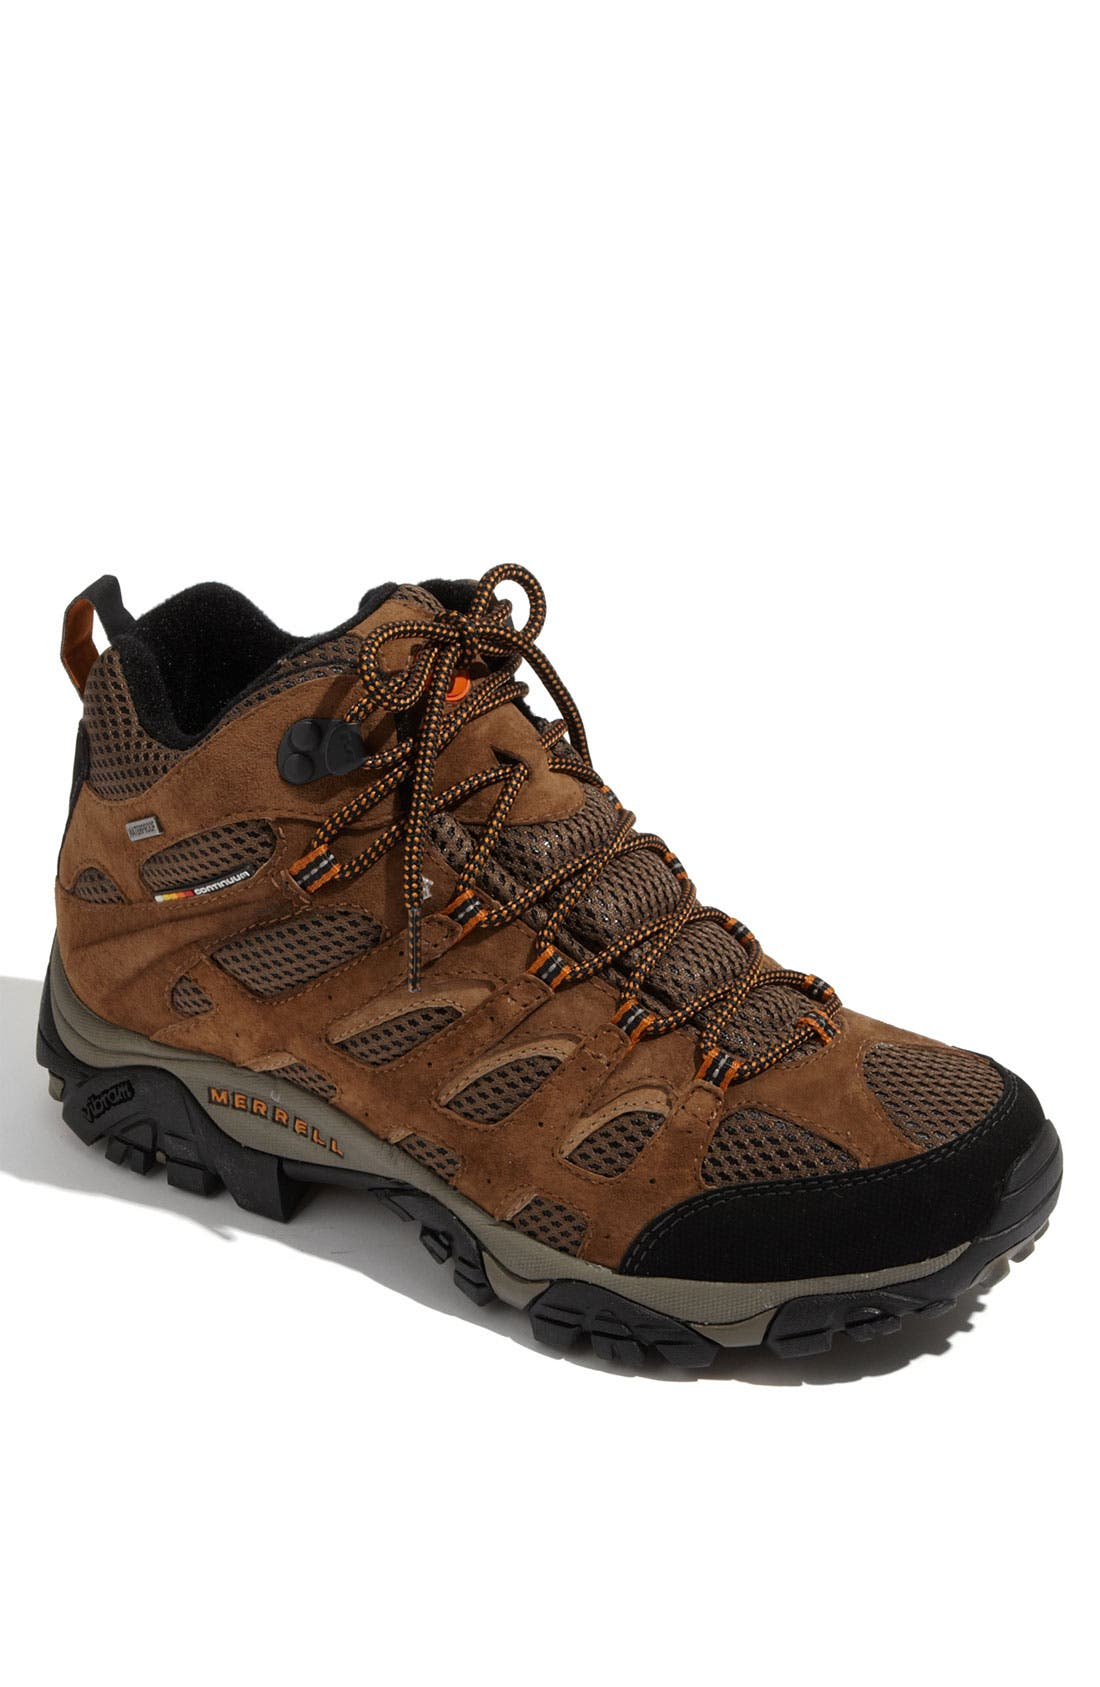 Main Image - Merrell 'Moab Mid' Waterproof Hiking Boot (Men)